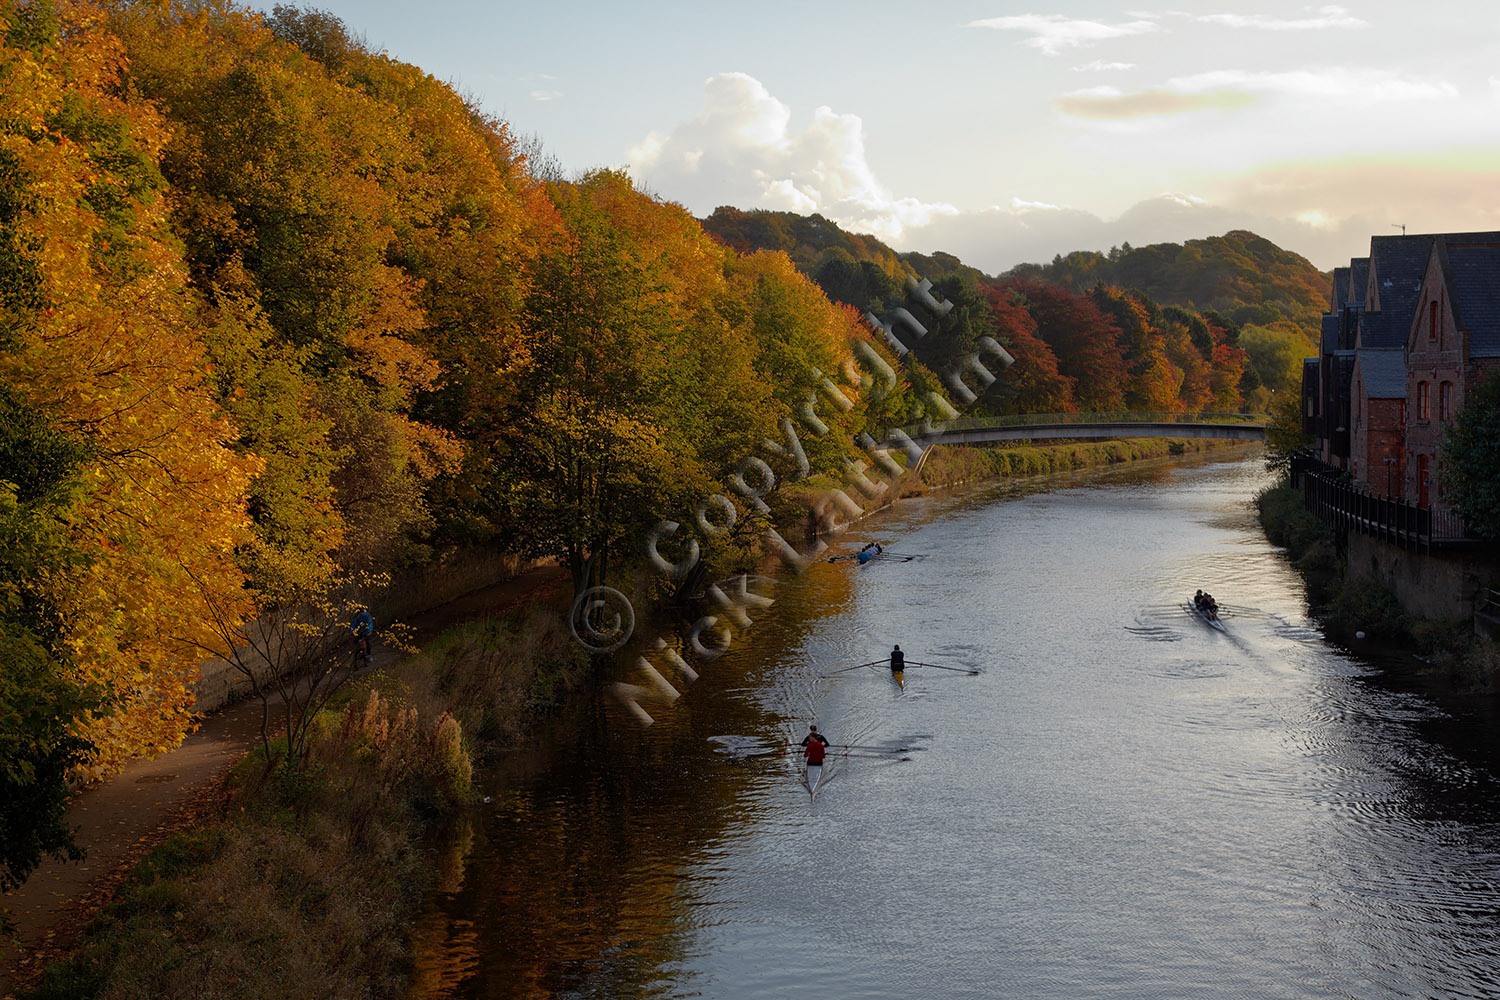 River Wear - Autumn rowers